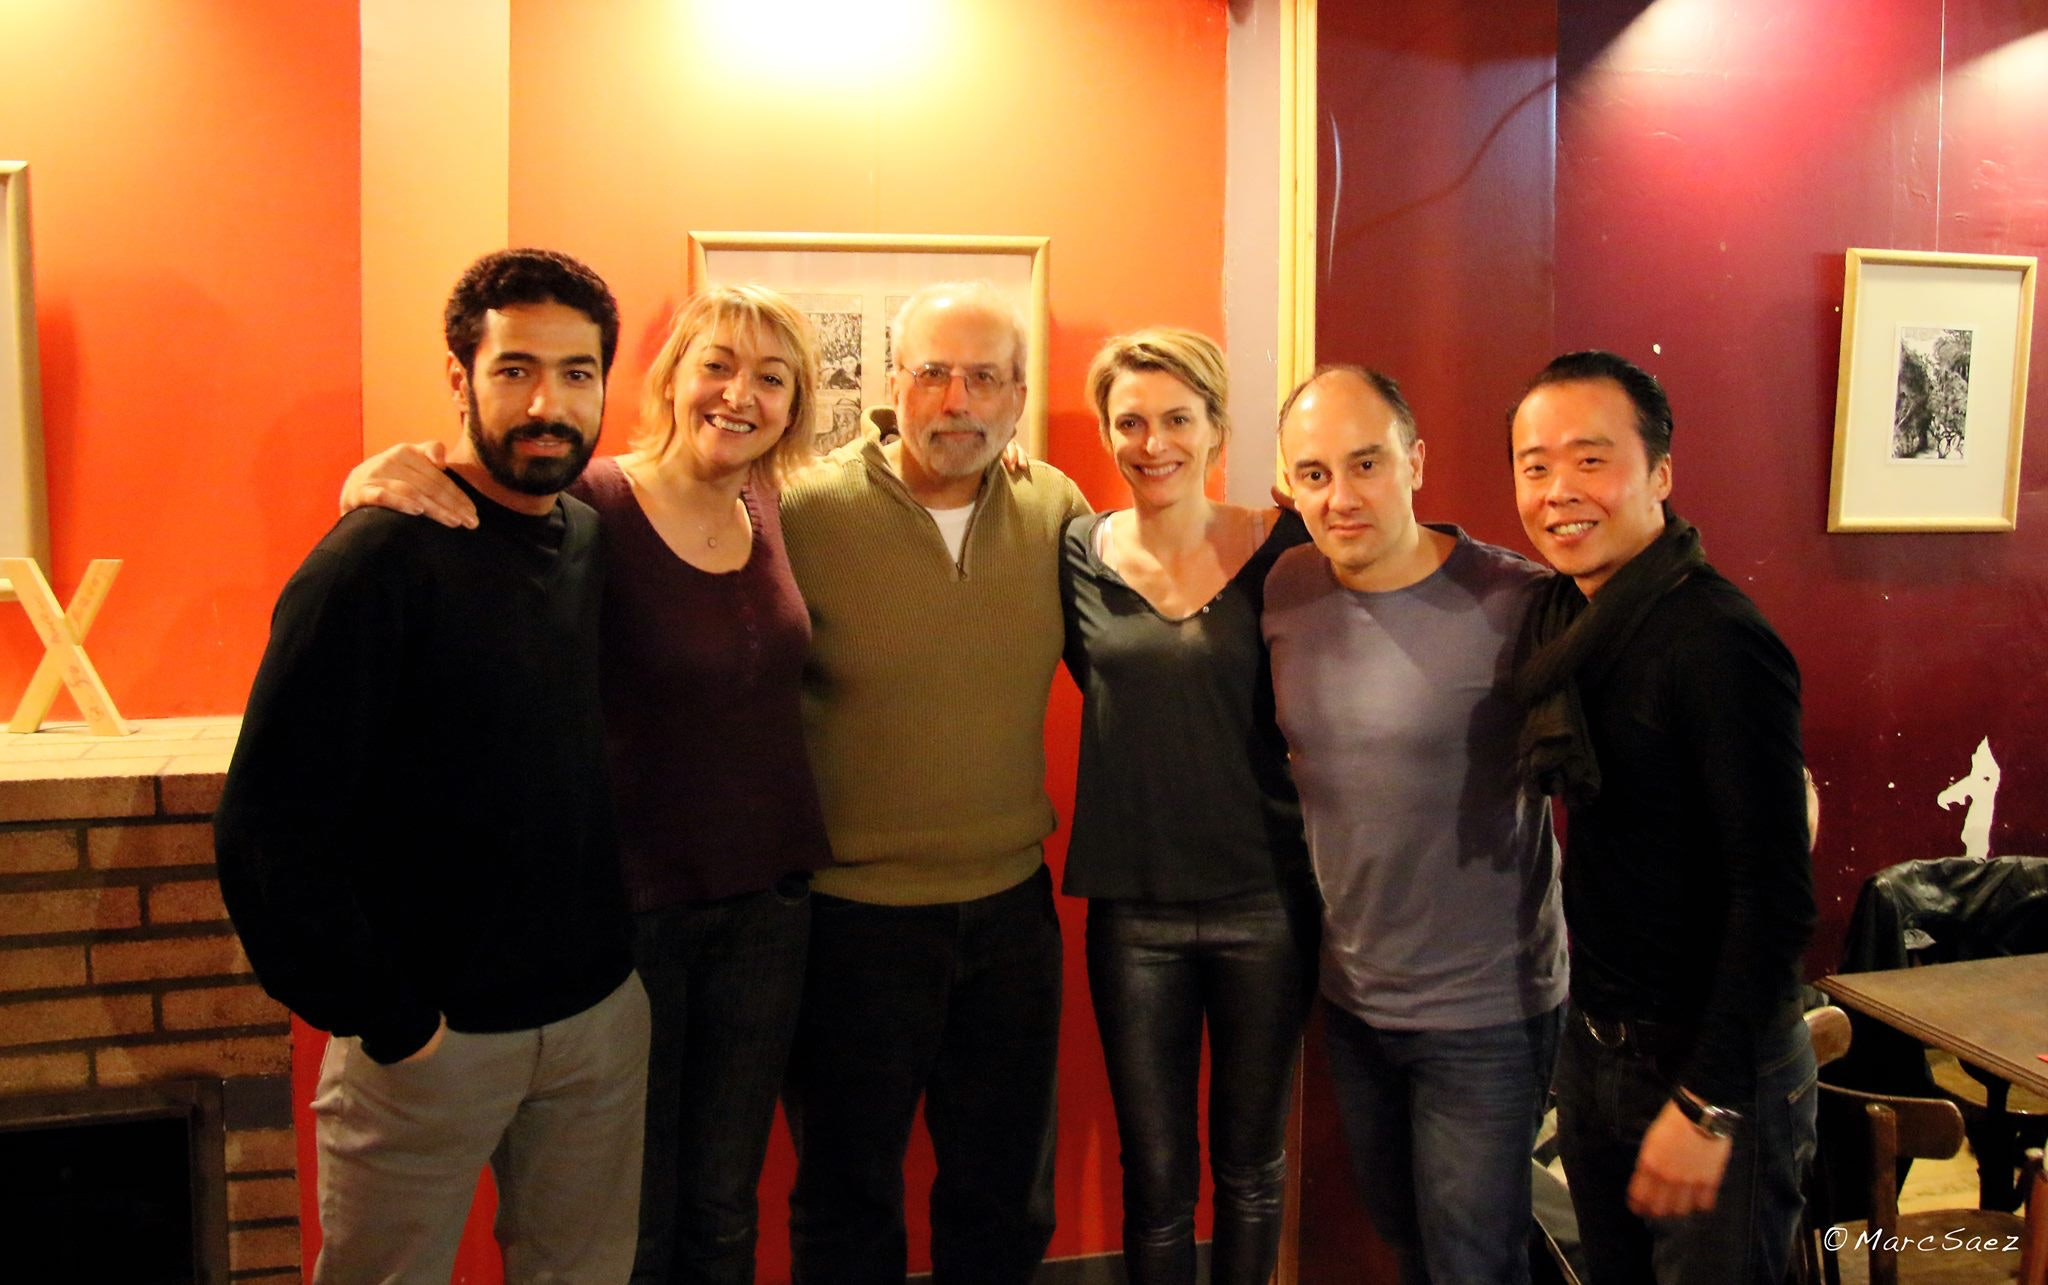 Image Tom Fontana in Paris with Marc SAEZ and the À NU team.jpg